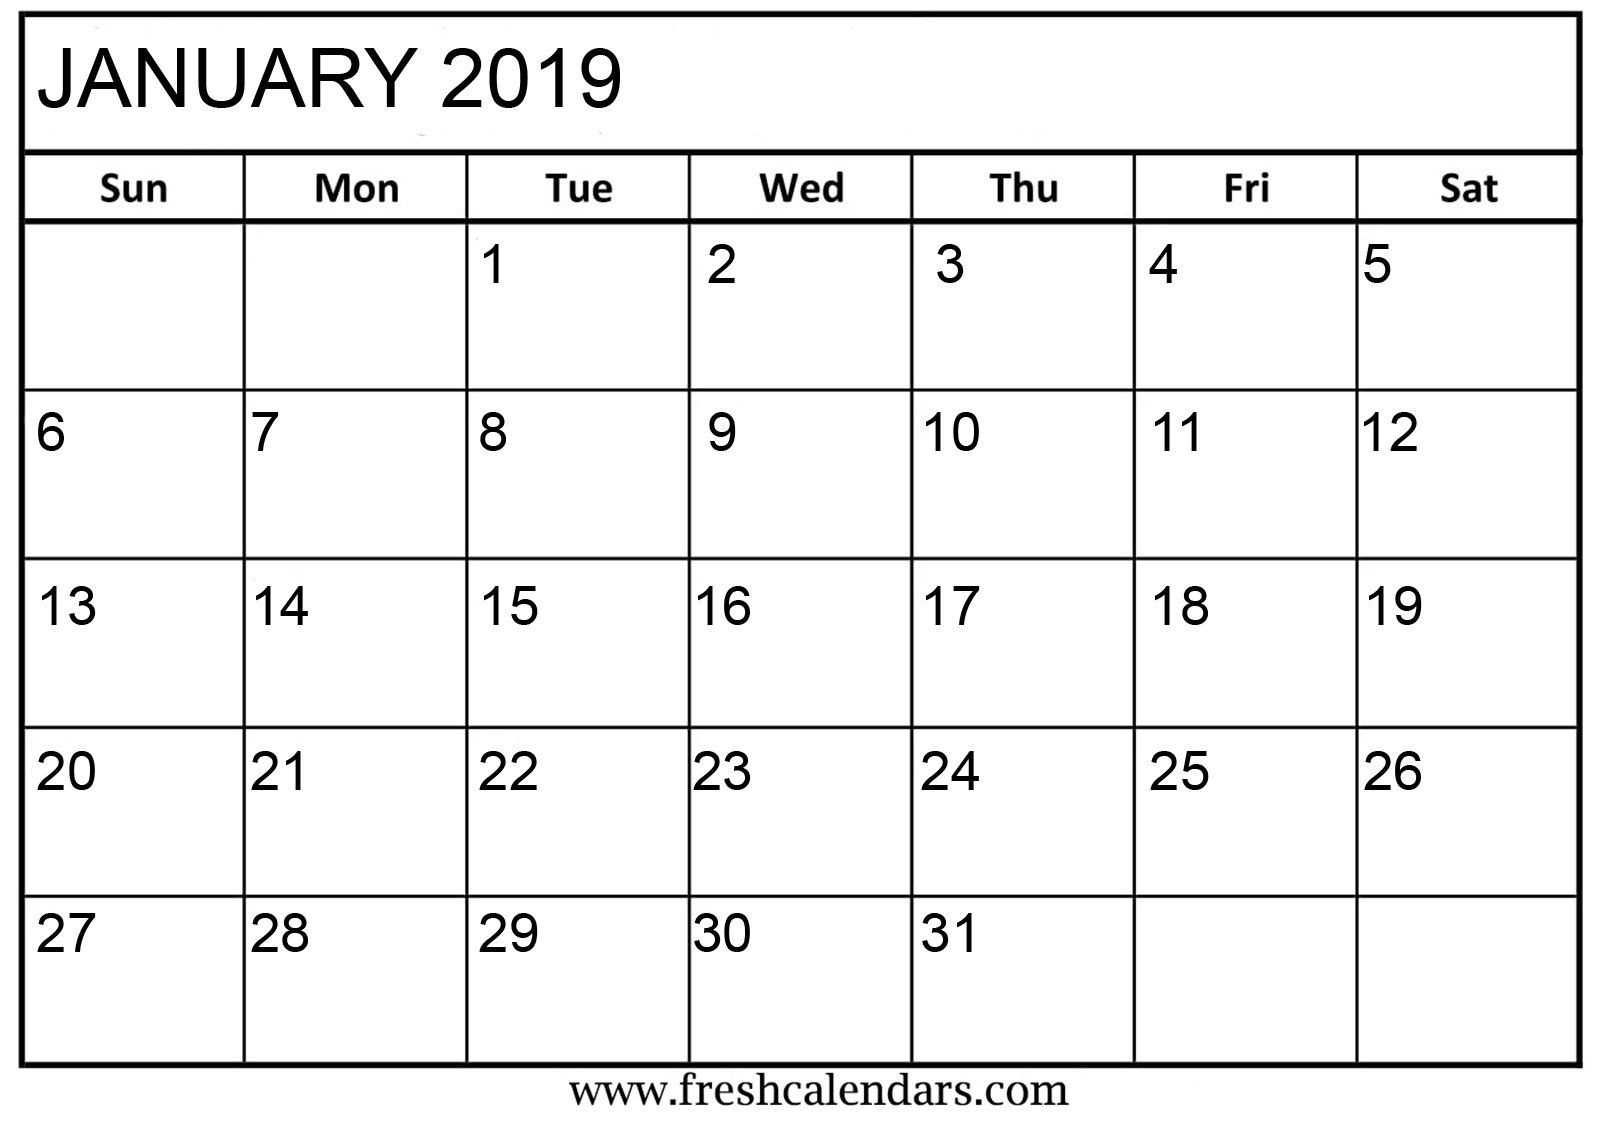 January 2019 Printable Calendars - Fresh Calendars Calendar 2019 Enero